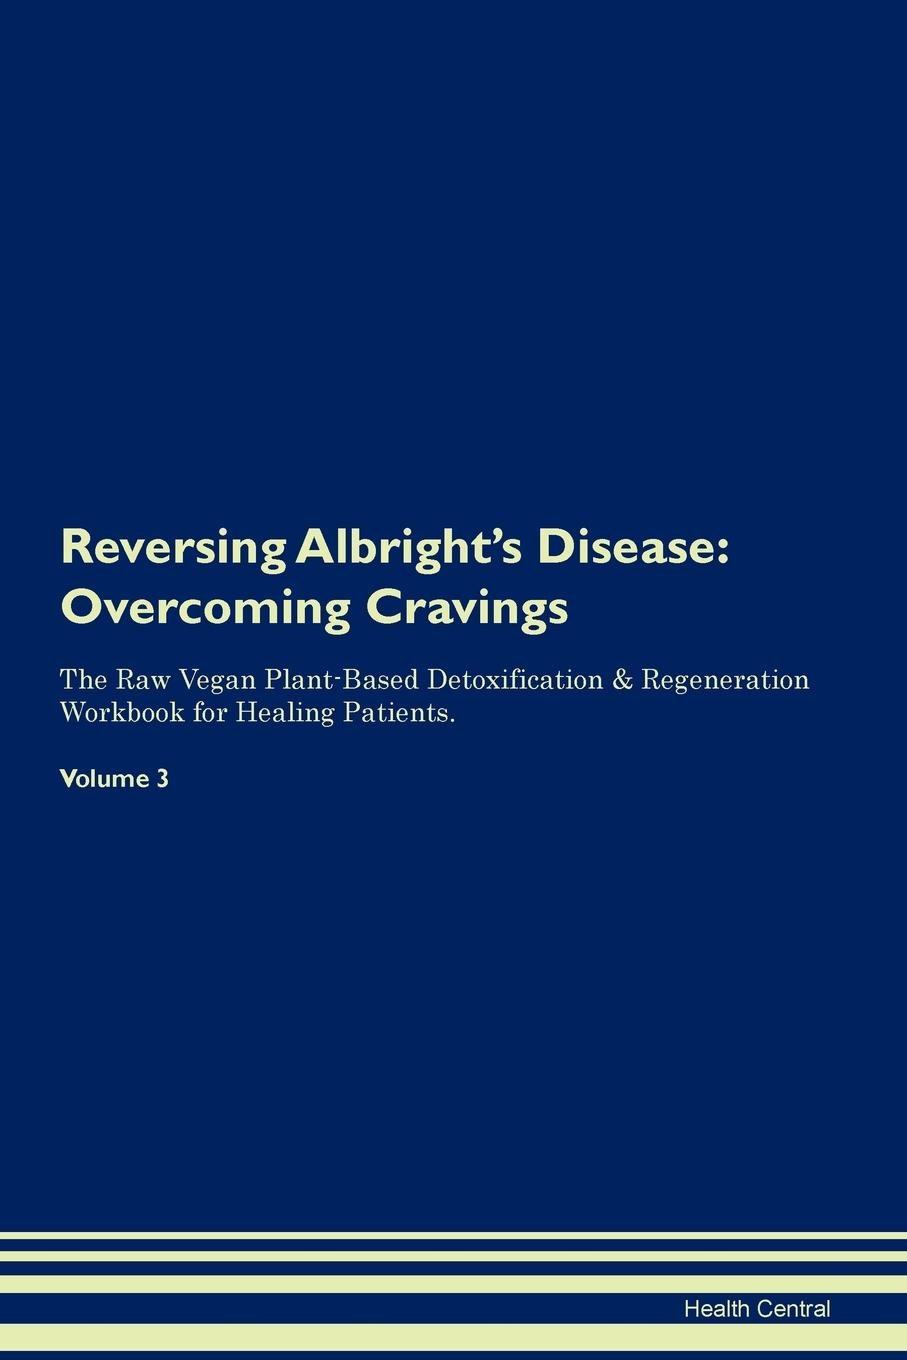 Фото - Health Central Reversing Albright's Disease. Overcoming Cravings The Raw Vegan Plant-Based Detoxification & Regeneration Workbook for Healing Patients. Volume 3 health central reversing extramammary paget s disease overcoming cravings the raw vegan plant based detoxification regeneration workbook for healing patients volume 3